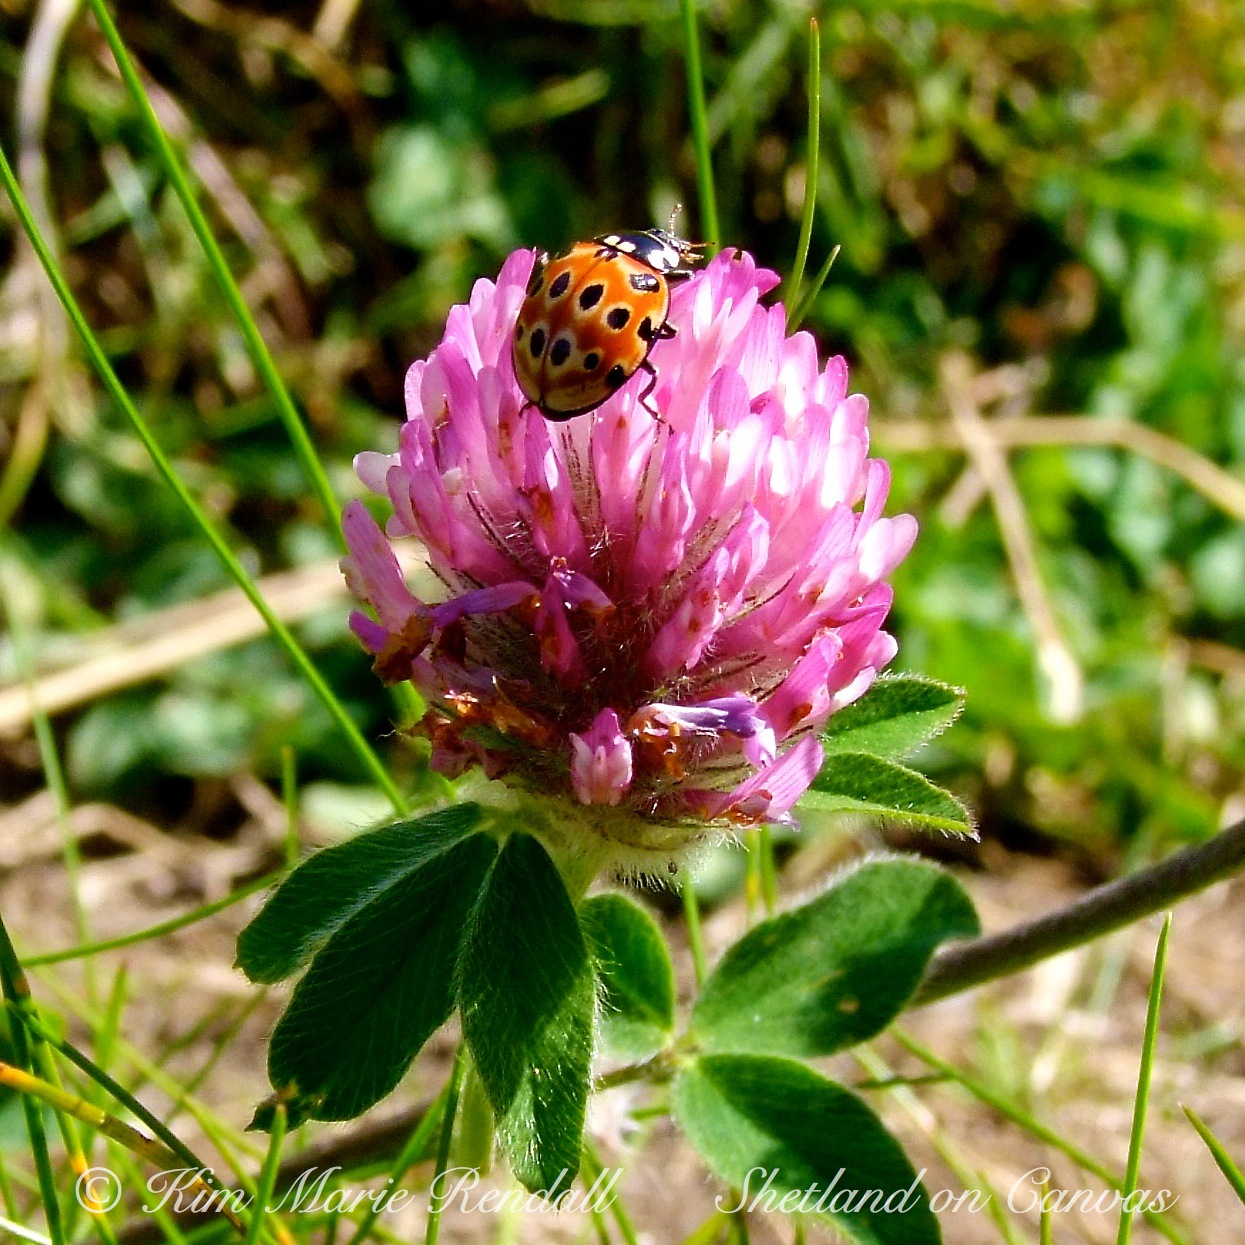 Eyed Ladybird on Red Clover